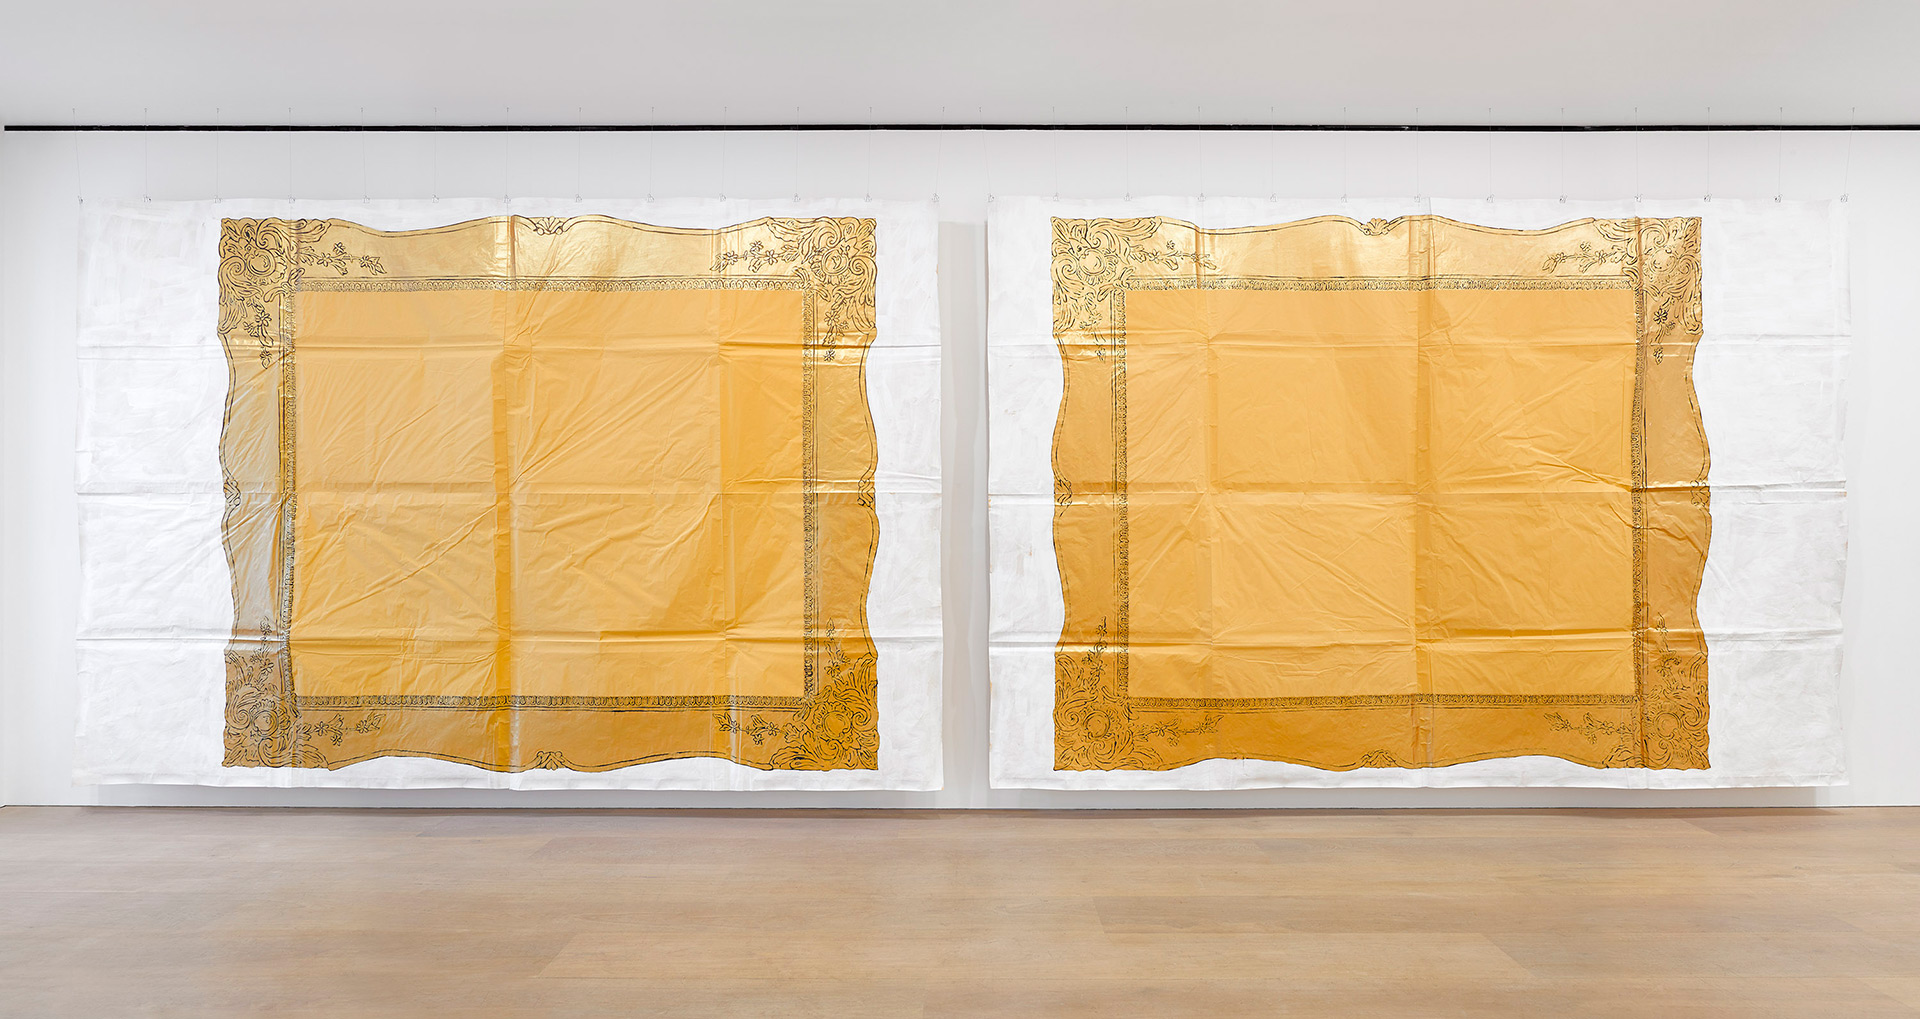 An installation view of an exhibition titled, Maxwell Alexandre, Pardo é Papel: Close a door to open a window, at David Zwirner London in 2020.